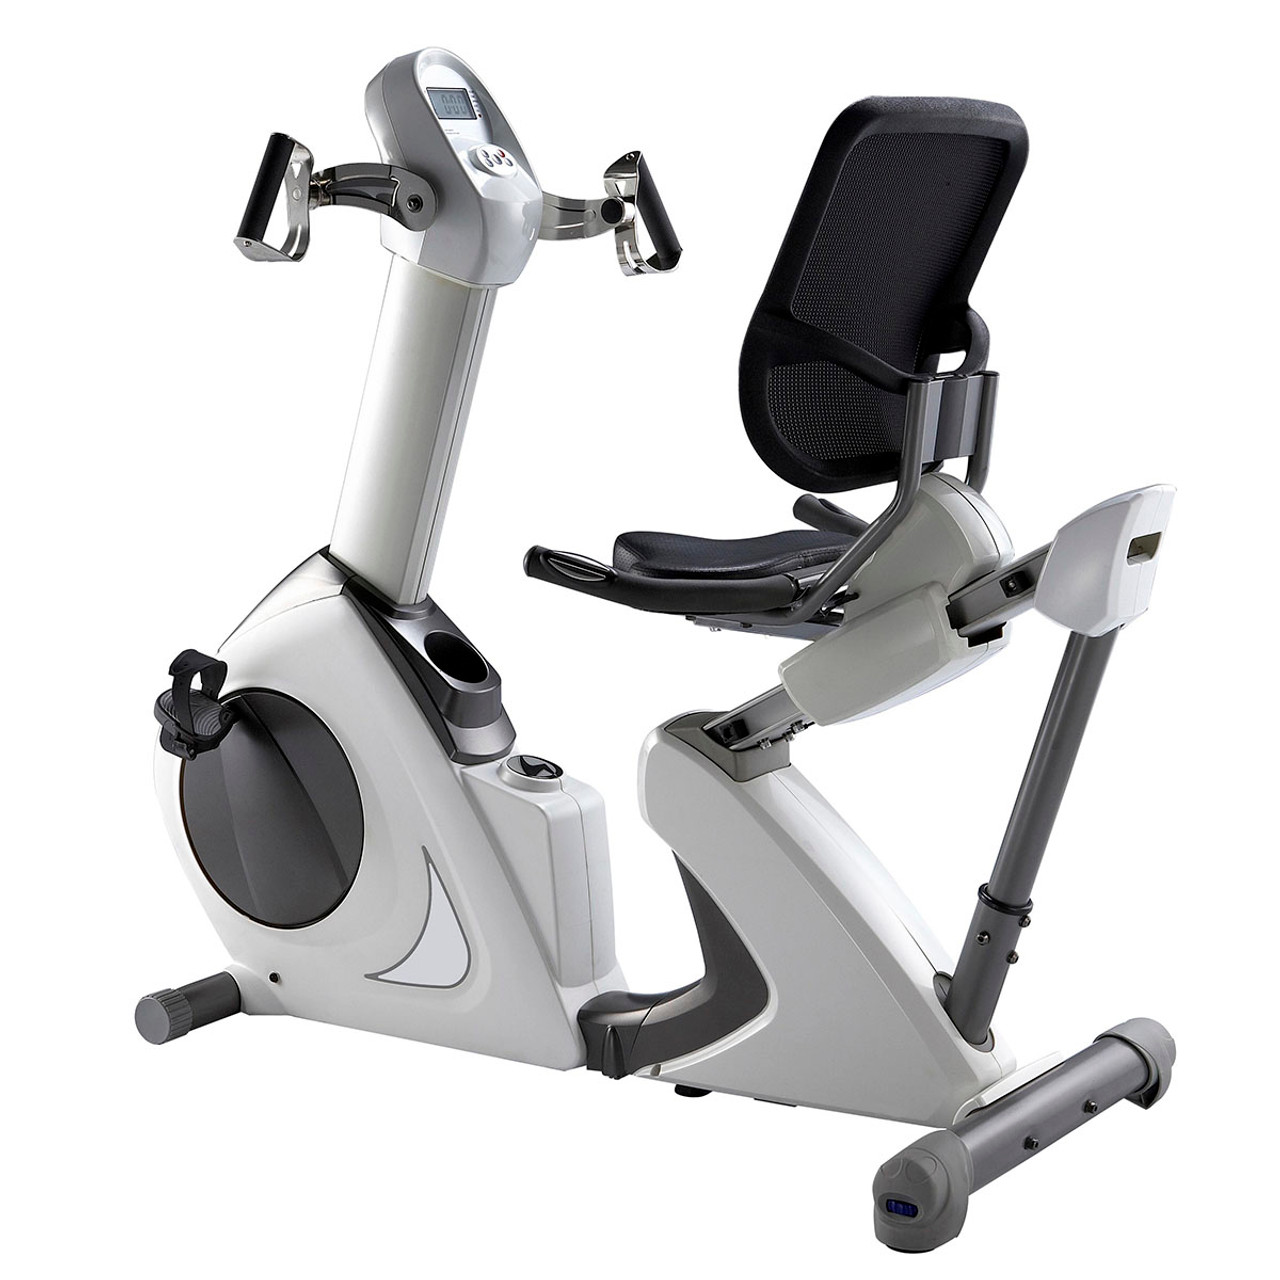 HCI PhysioCycle XT Recumbent Cycle and UBE Trainer